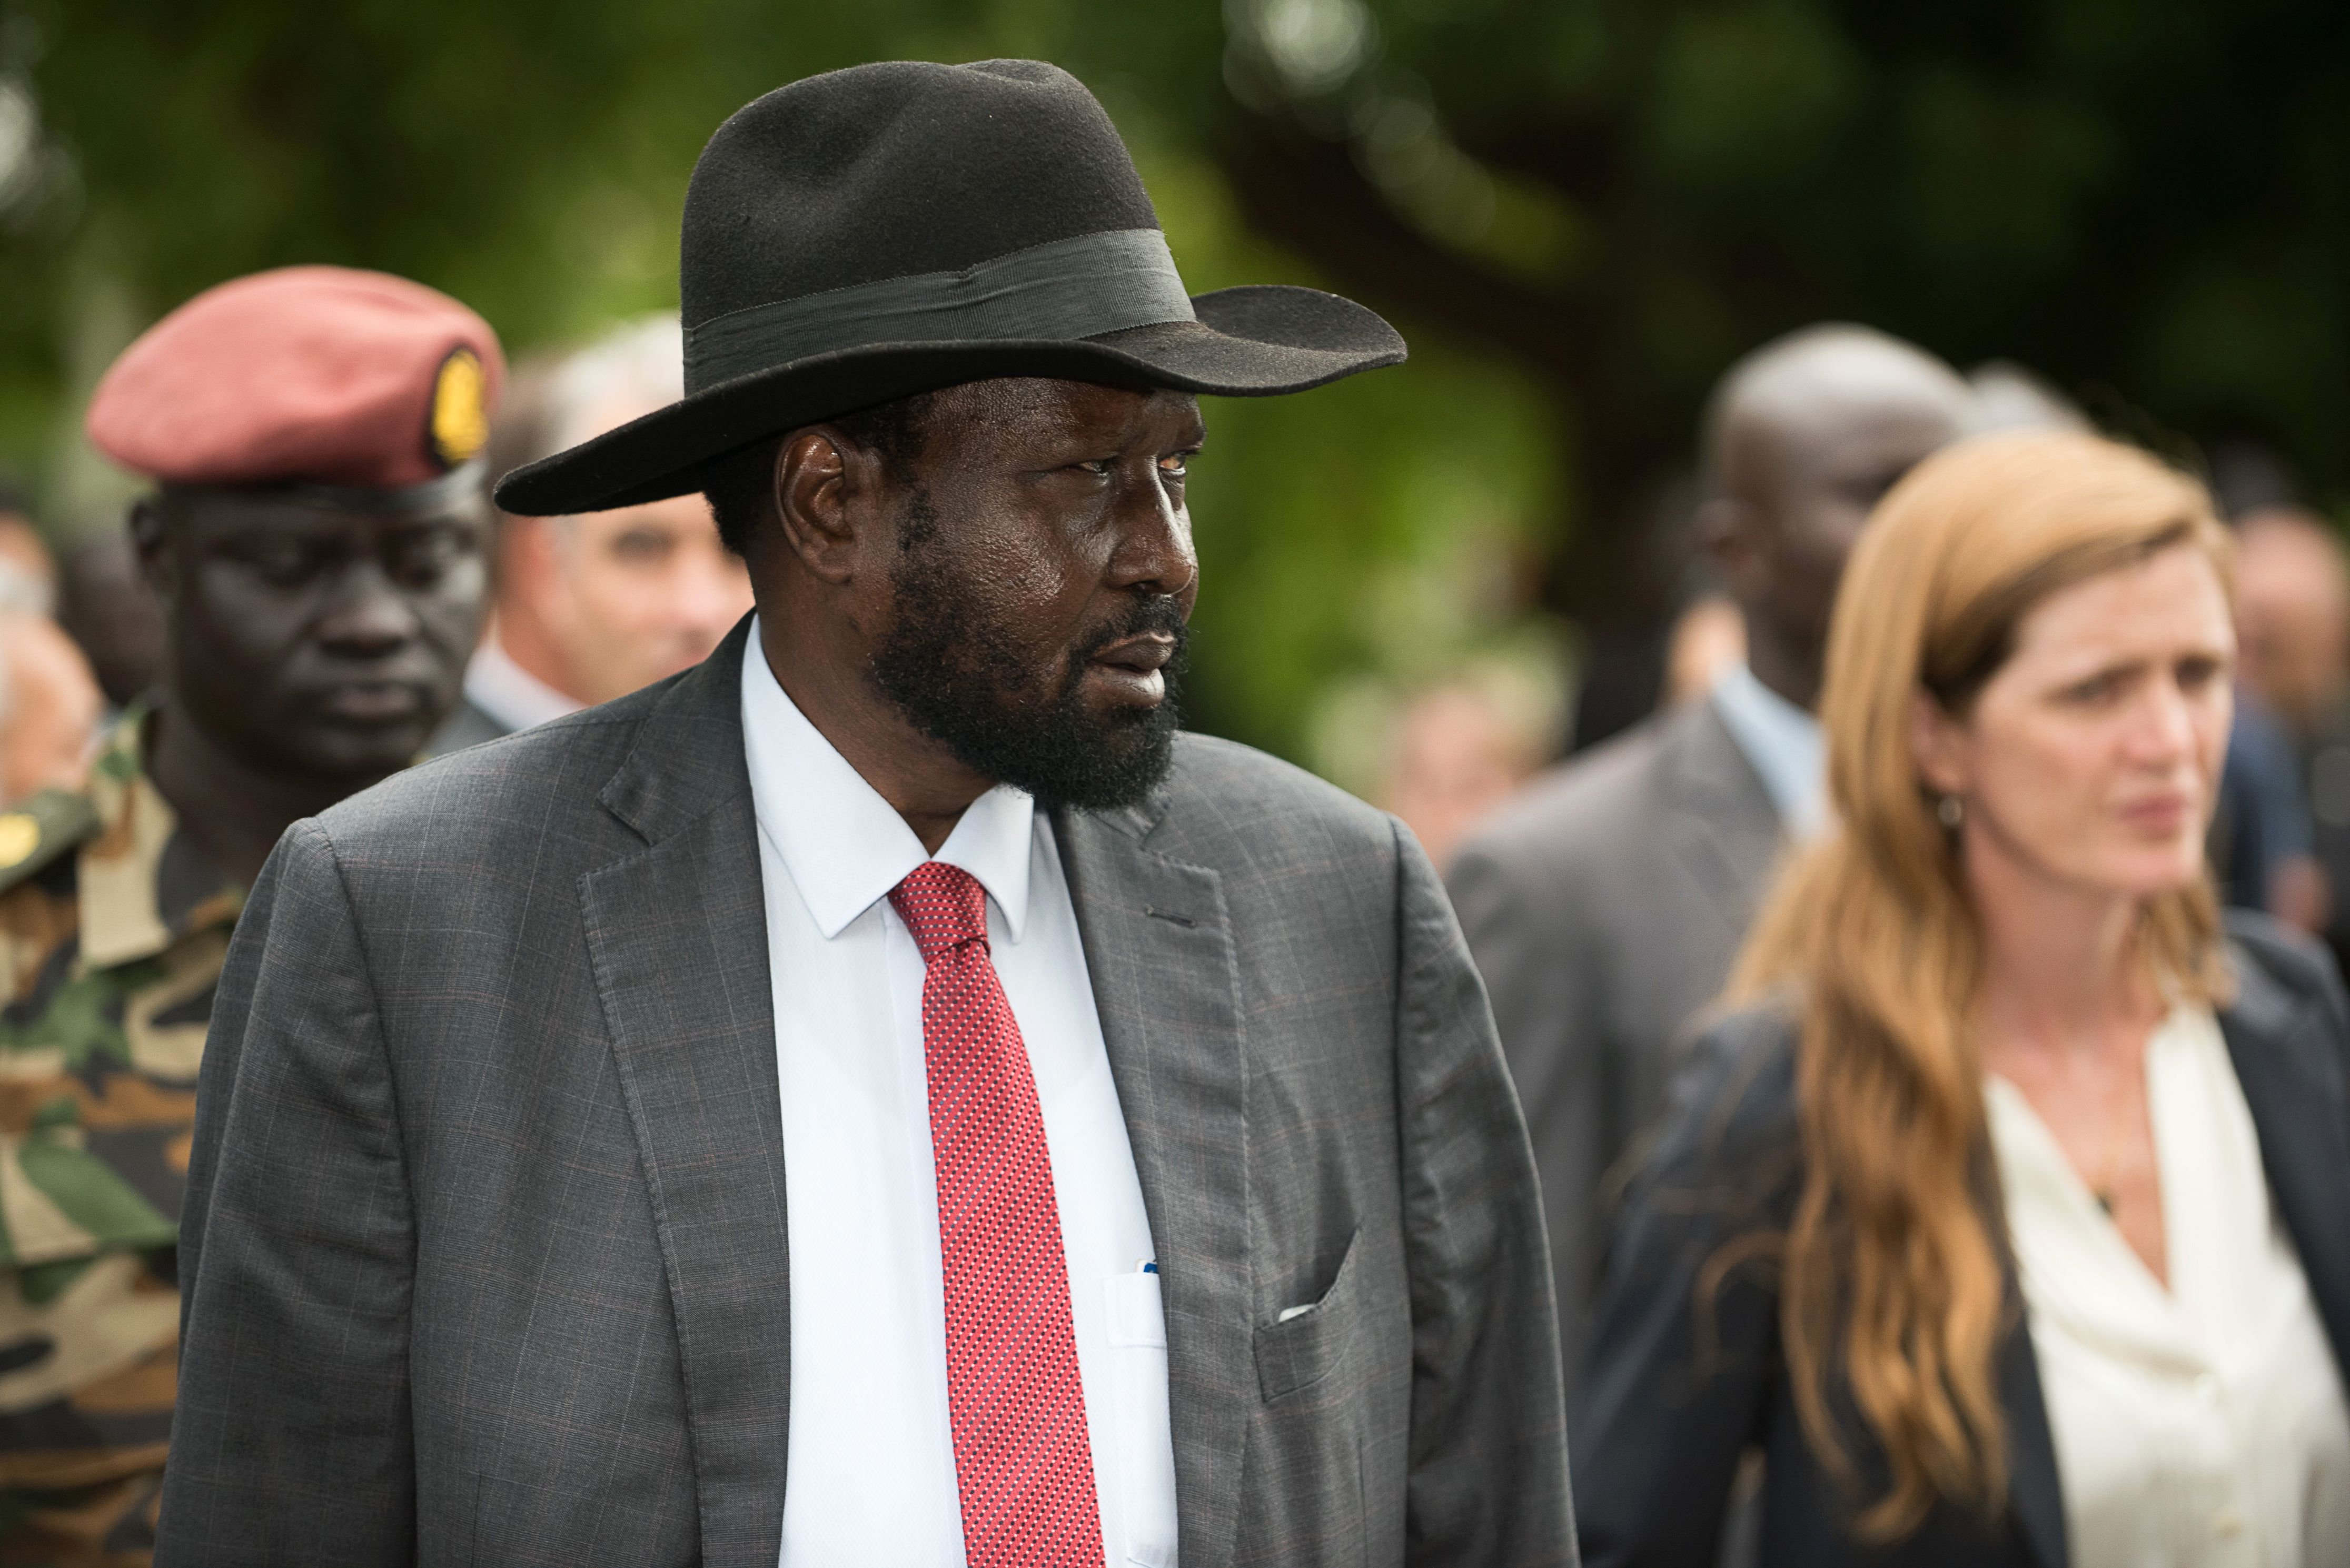 South Sudan's President Salva Kiir during a tour of South Sudan's state house, Sept. 4, 2016.